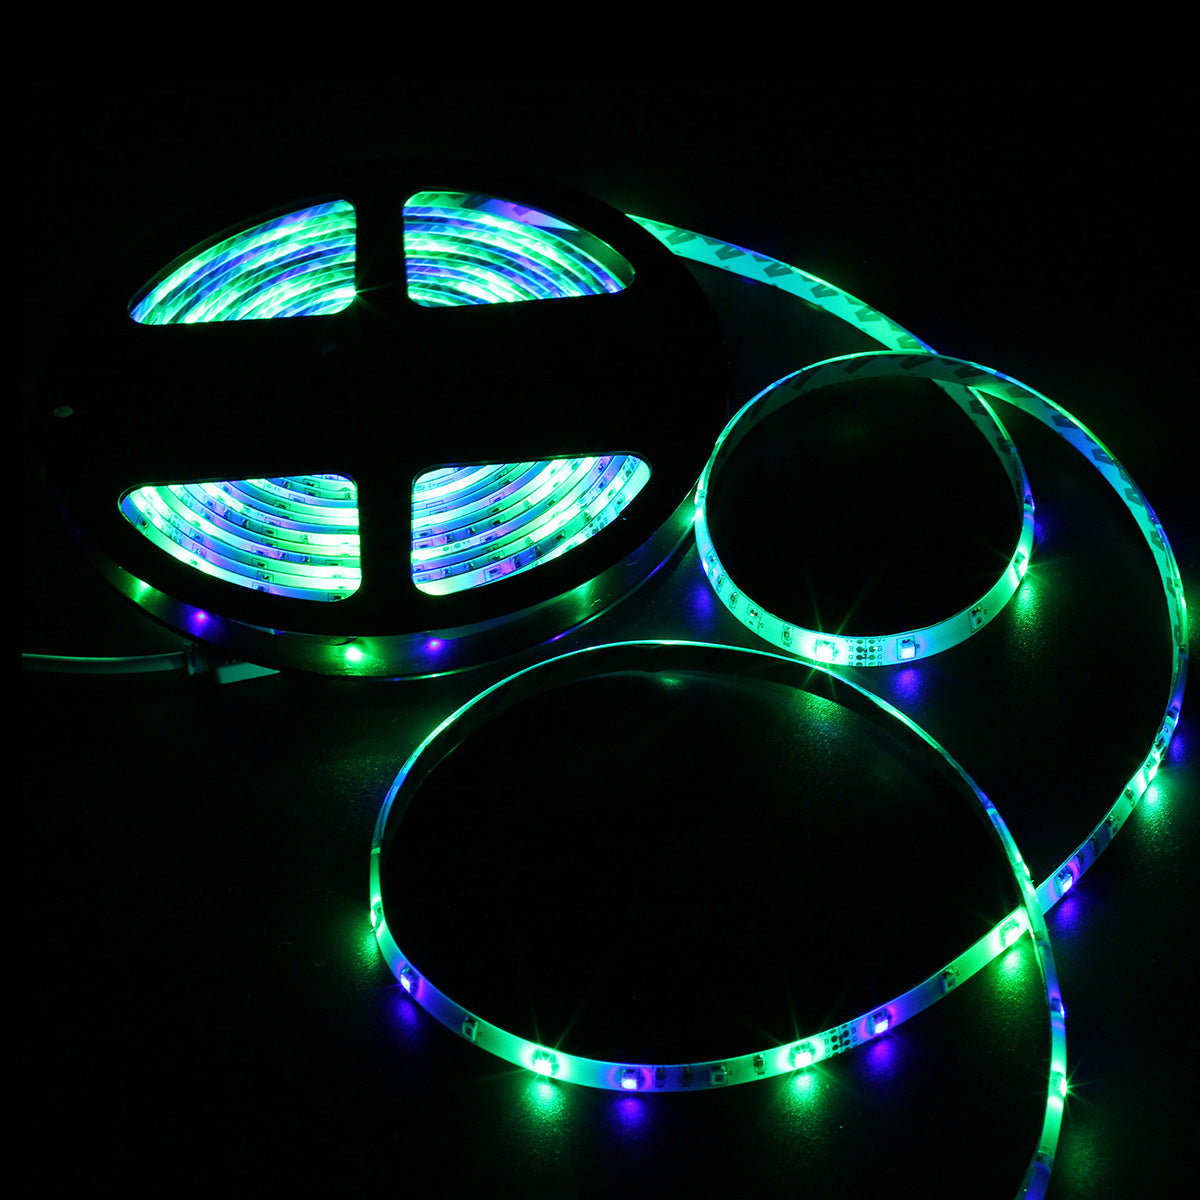 SUPERNIGHT RGB LED Light Strip Waterproof IP65, 16.4ft 3528 SMD 300leds Multi-Color Rope Lighting Flexible Tape